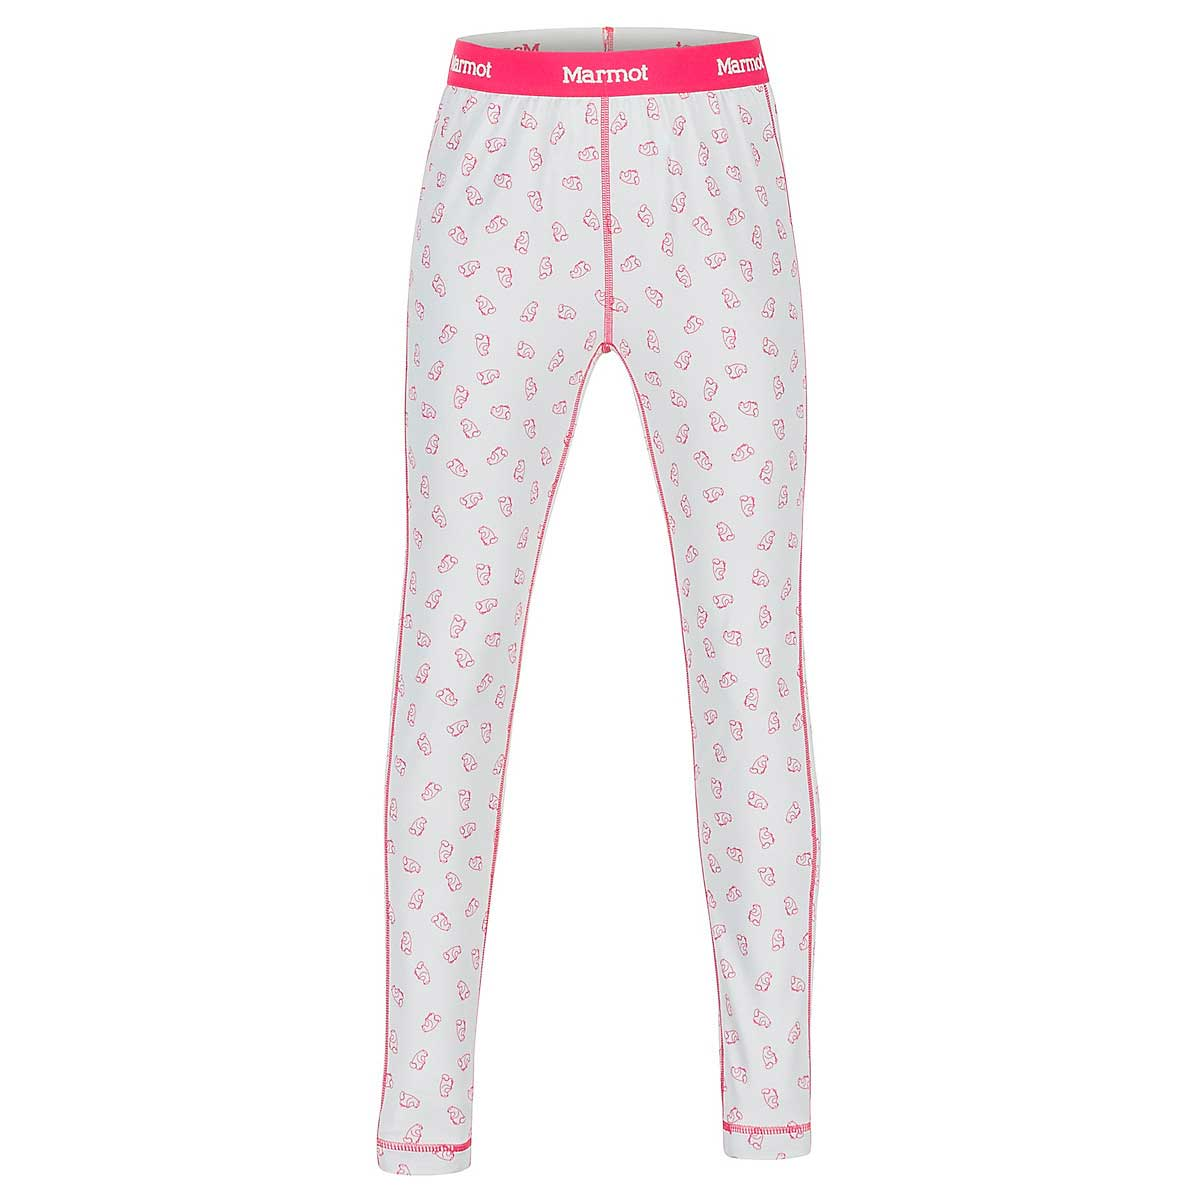 Marmot Girls' Midweight Meghan Tight in Disco Pink Ditzy Marmot